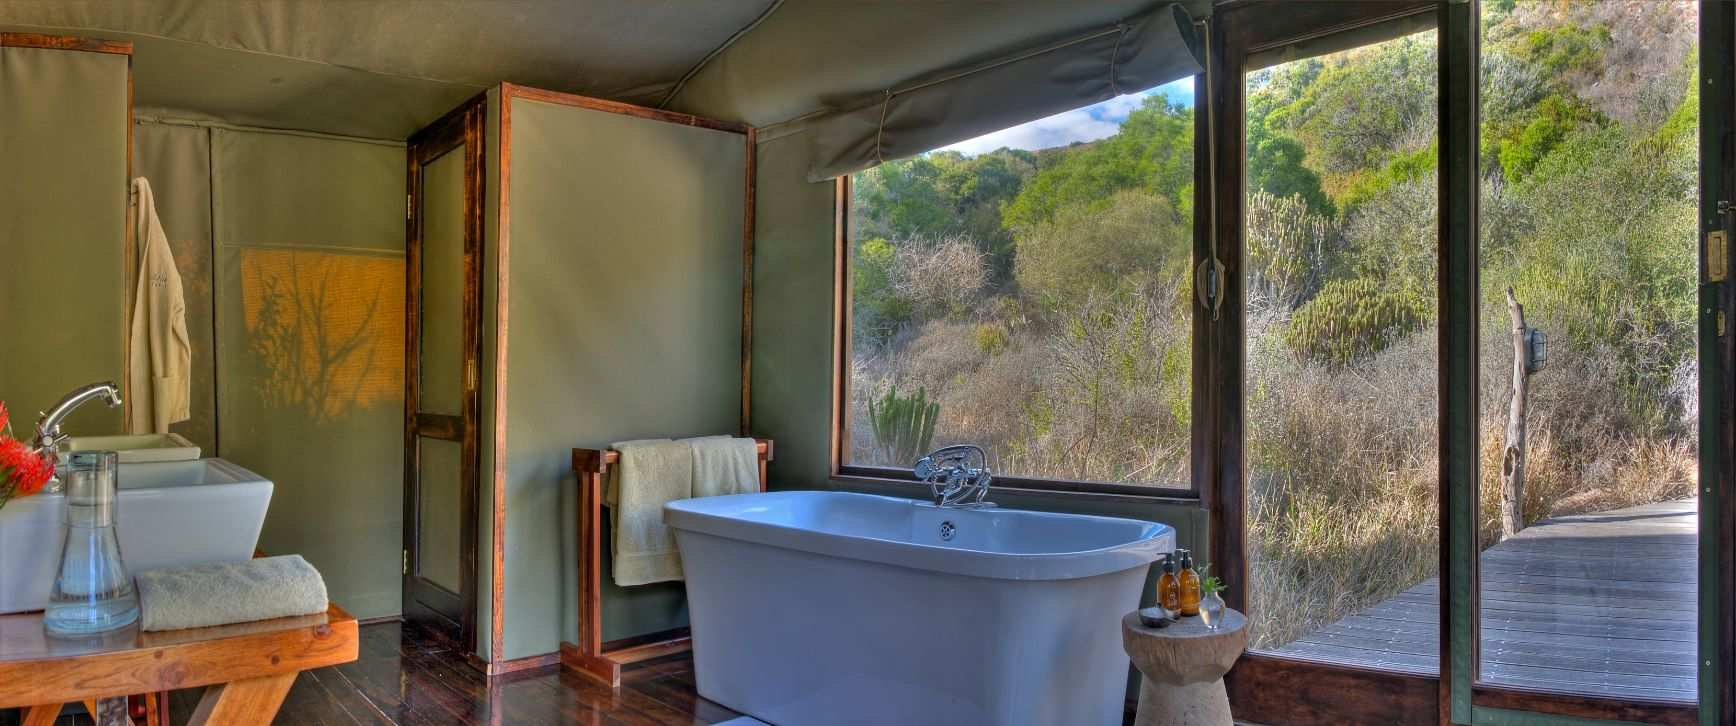 Amakhala Game Reserve Hillsnek Safari Camp Tent Bathroom